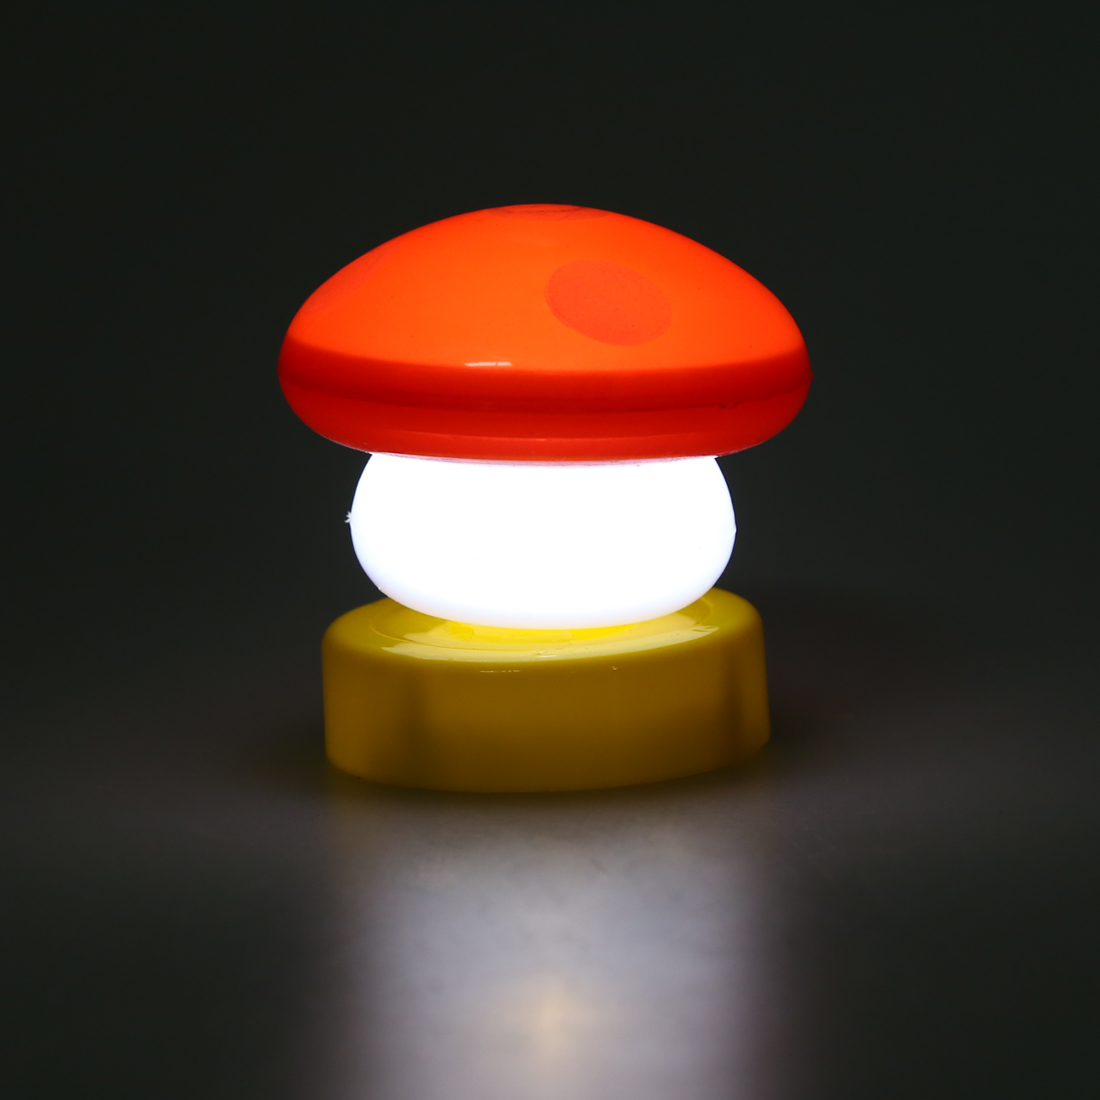 led mushroom night lights red hy ebay. Black Bedroom Furniture Sets. Home Design Ideas